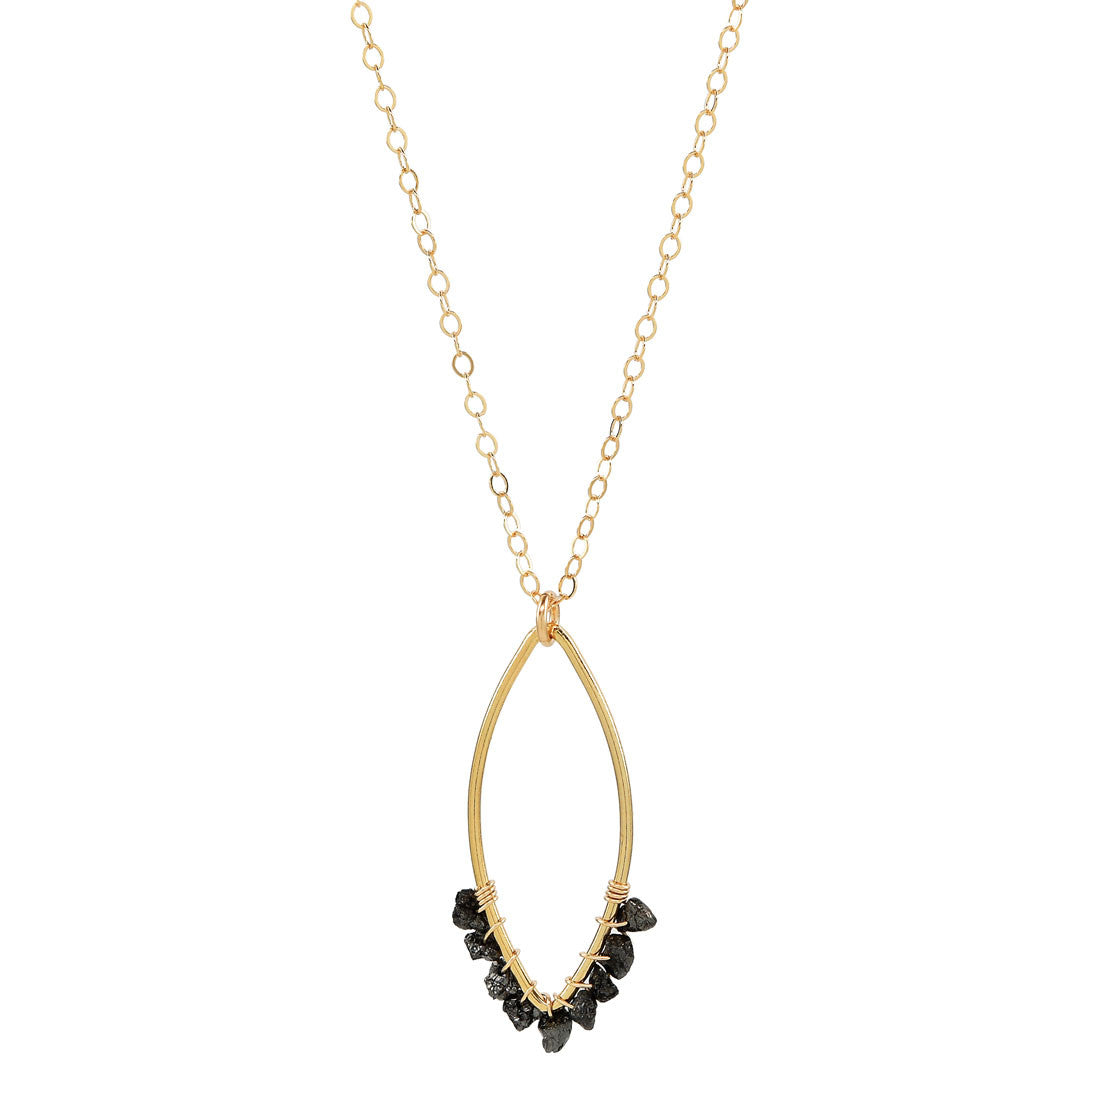 Raw Diamond Gold Necklace - Celebrity Necklace